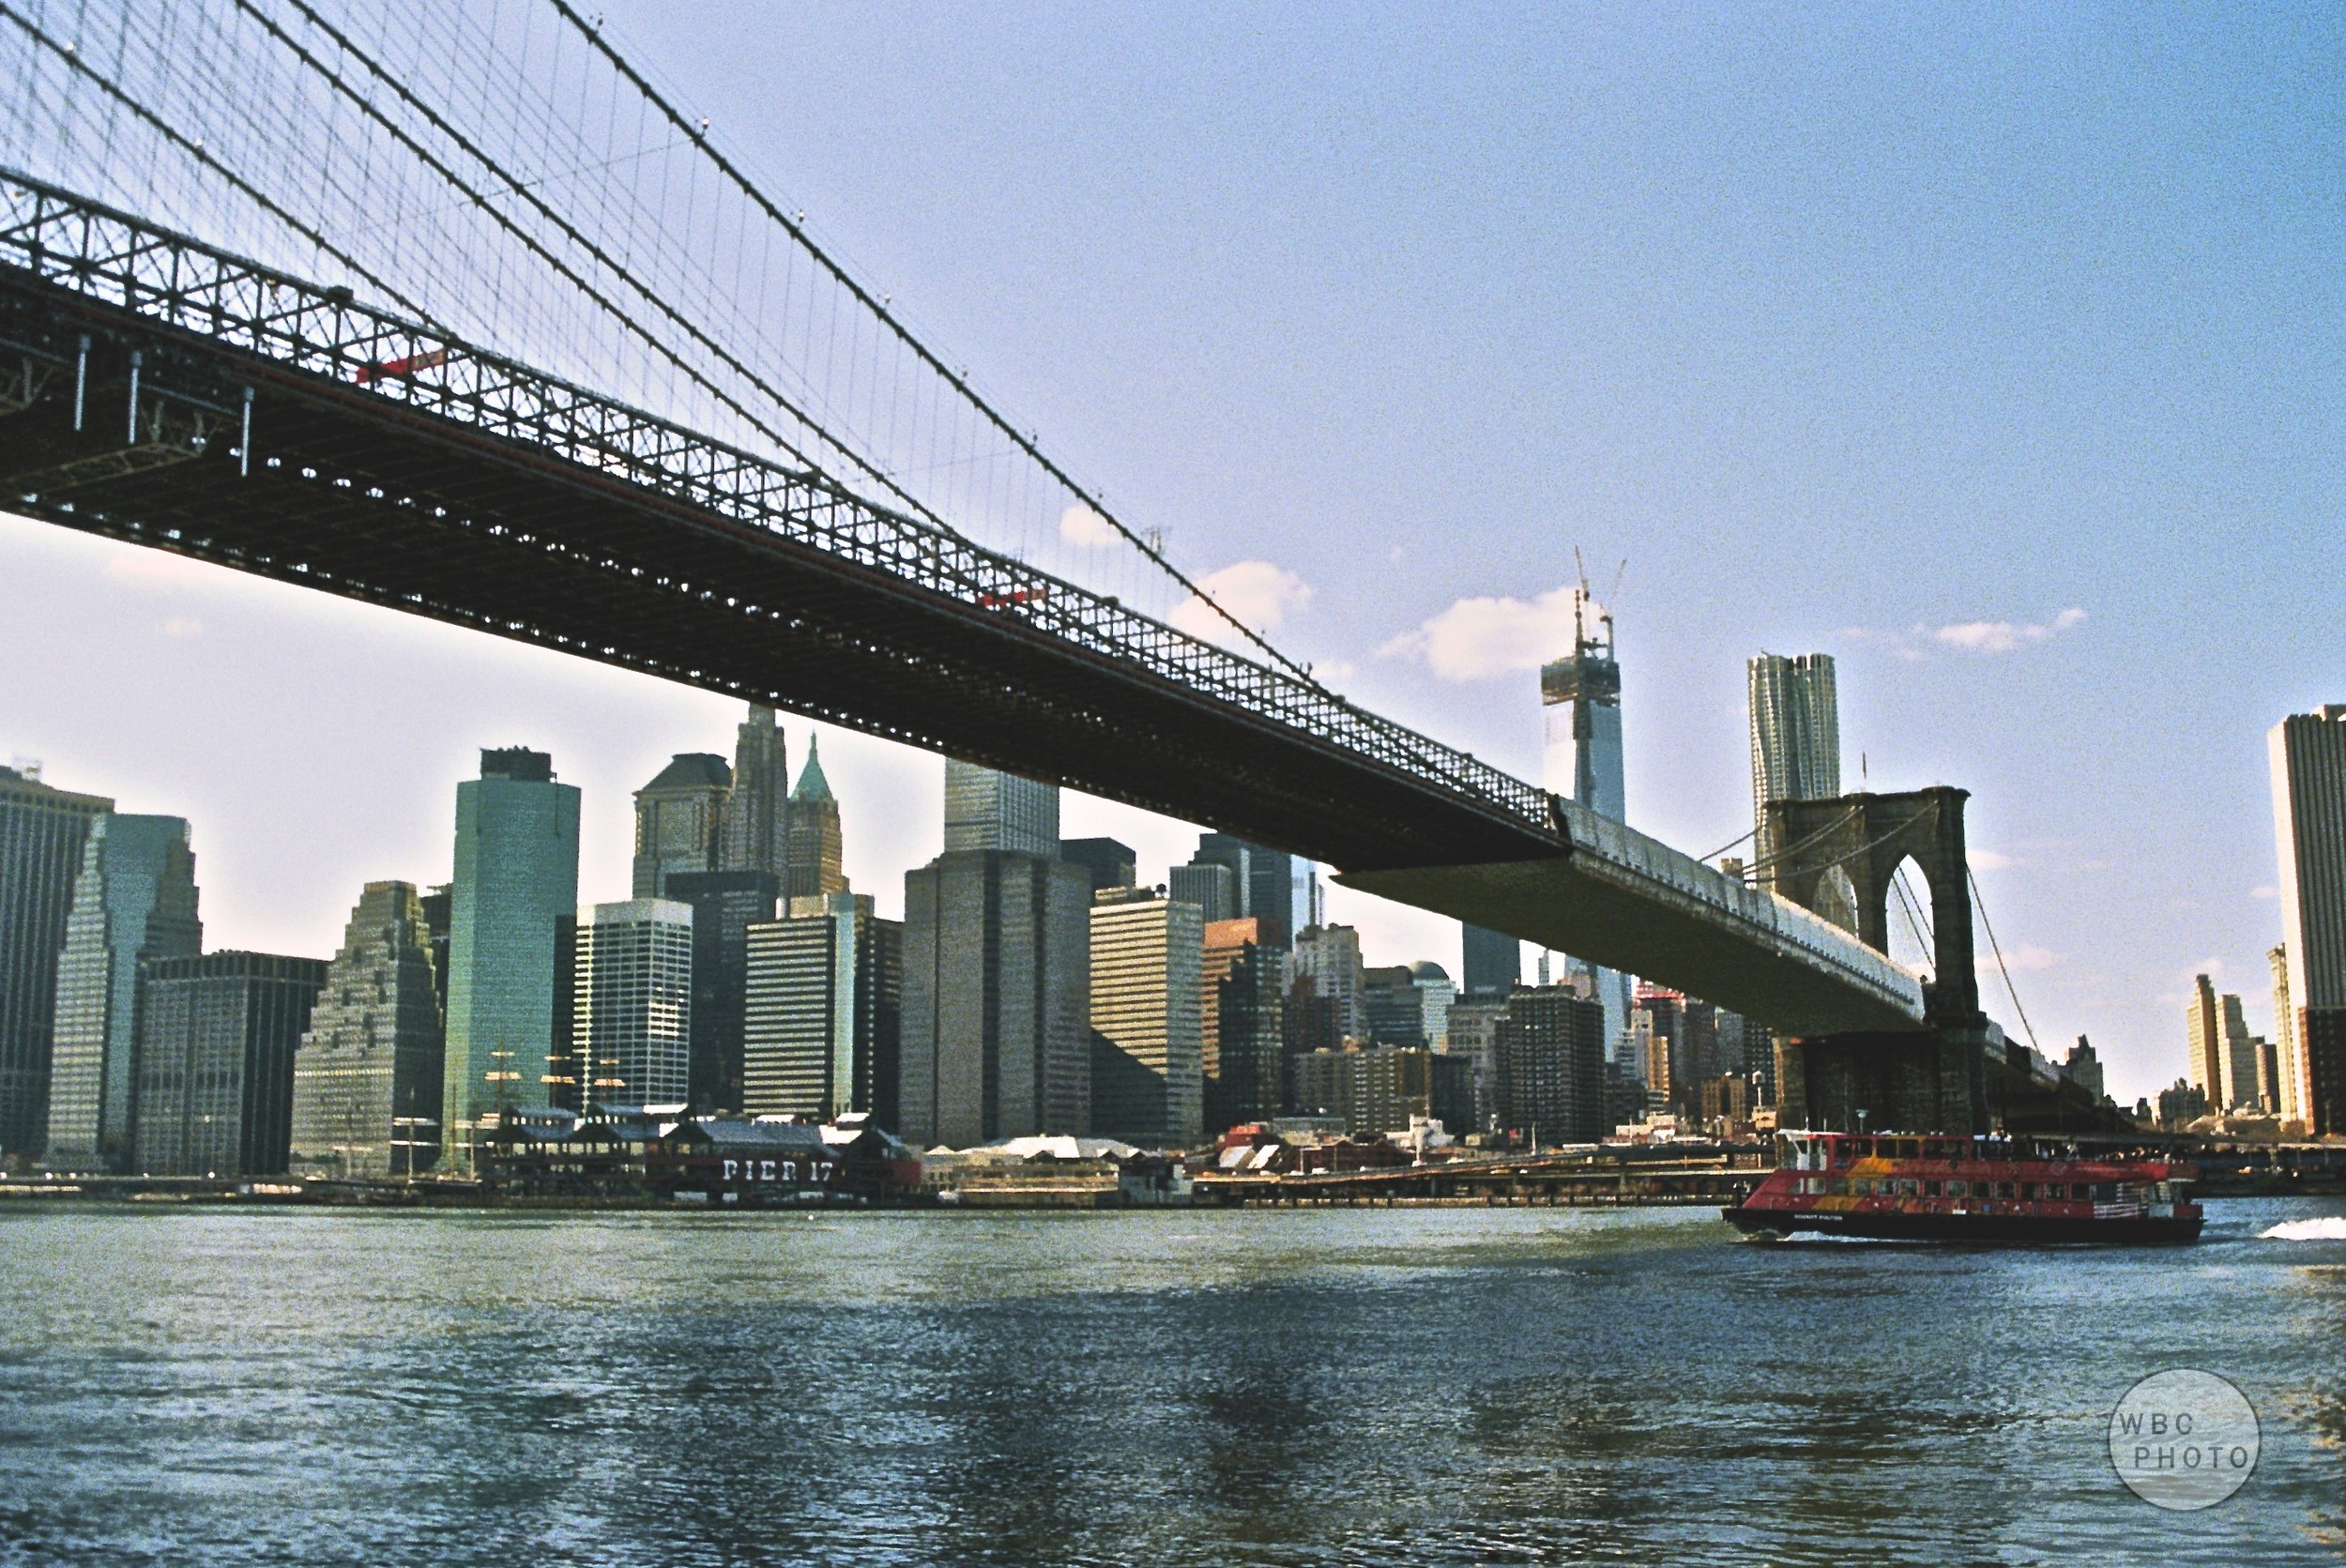 boat-under-brooklyn-bridge-wbc-film.jpg